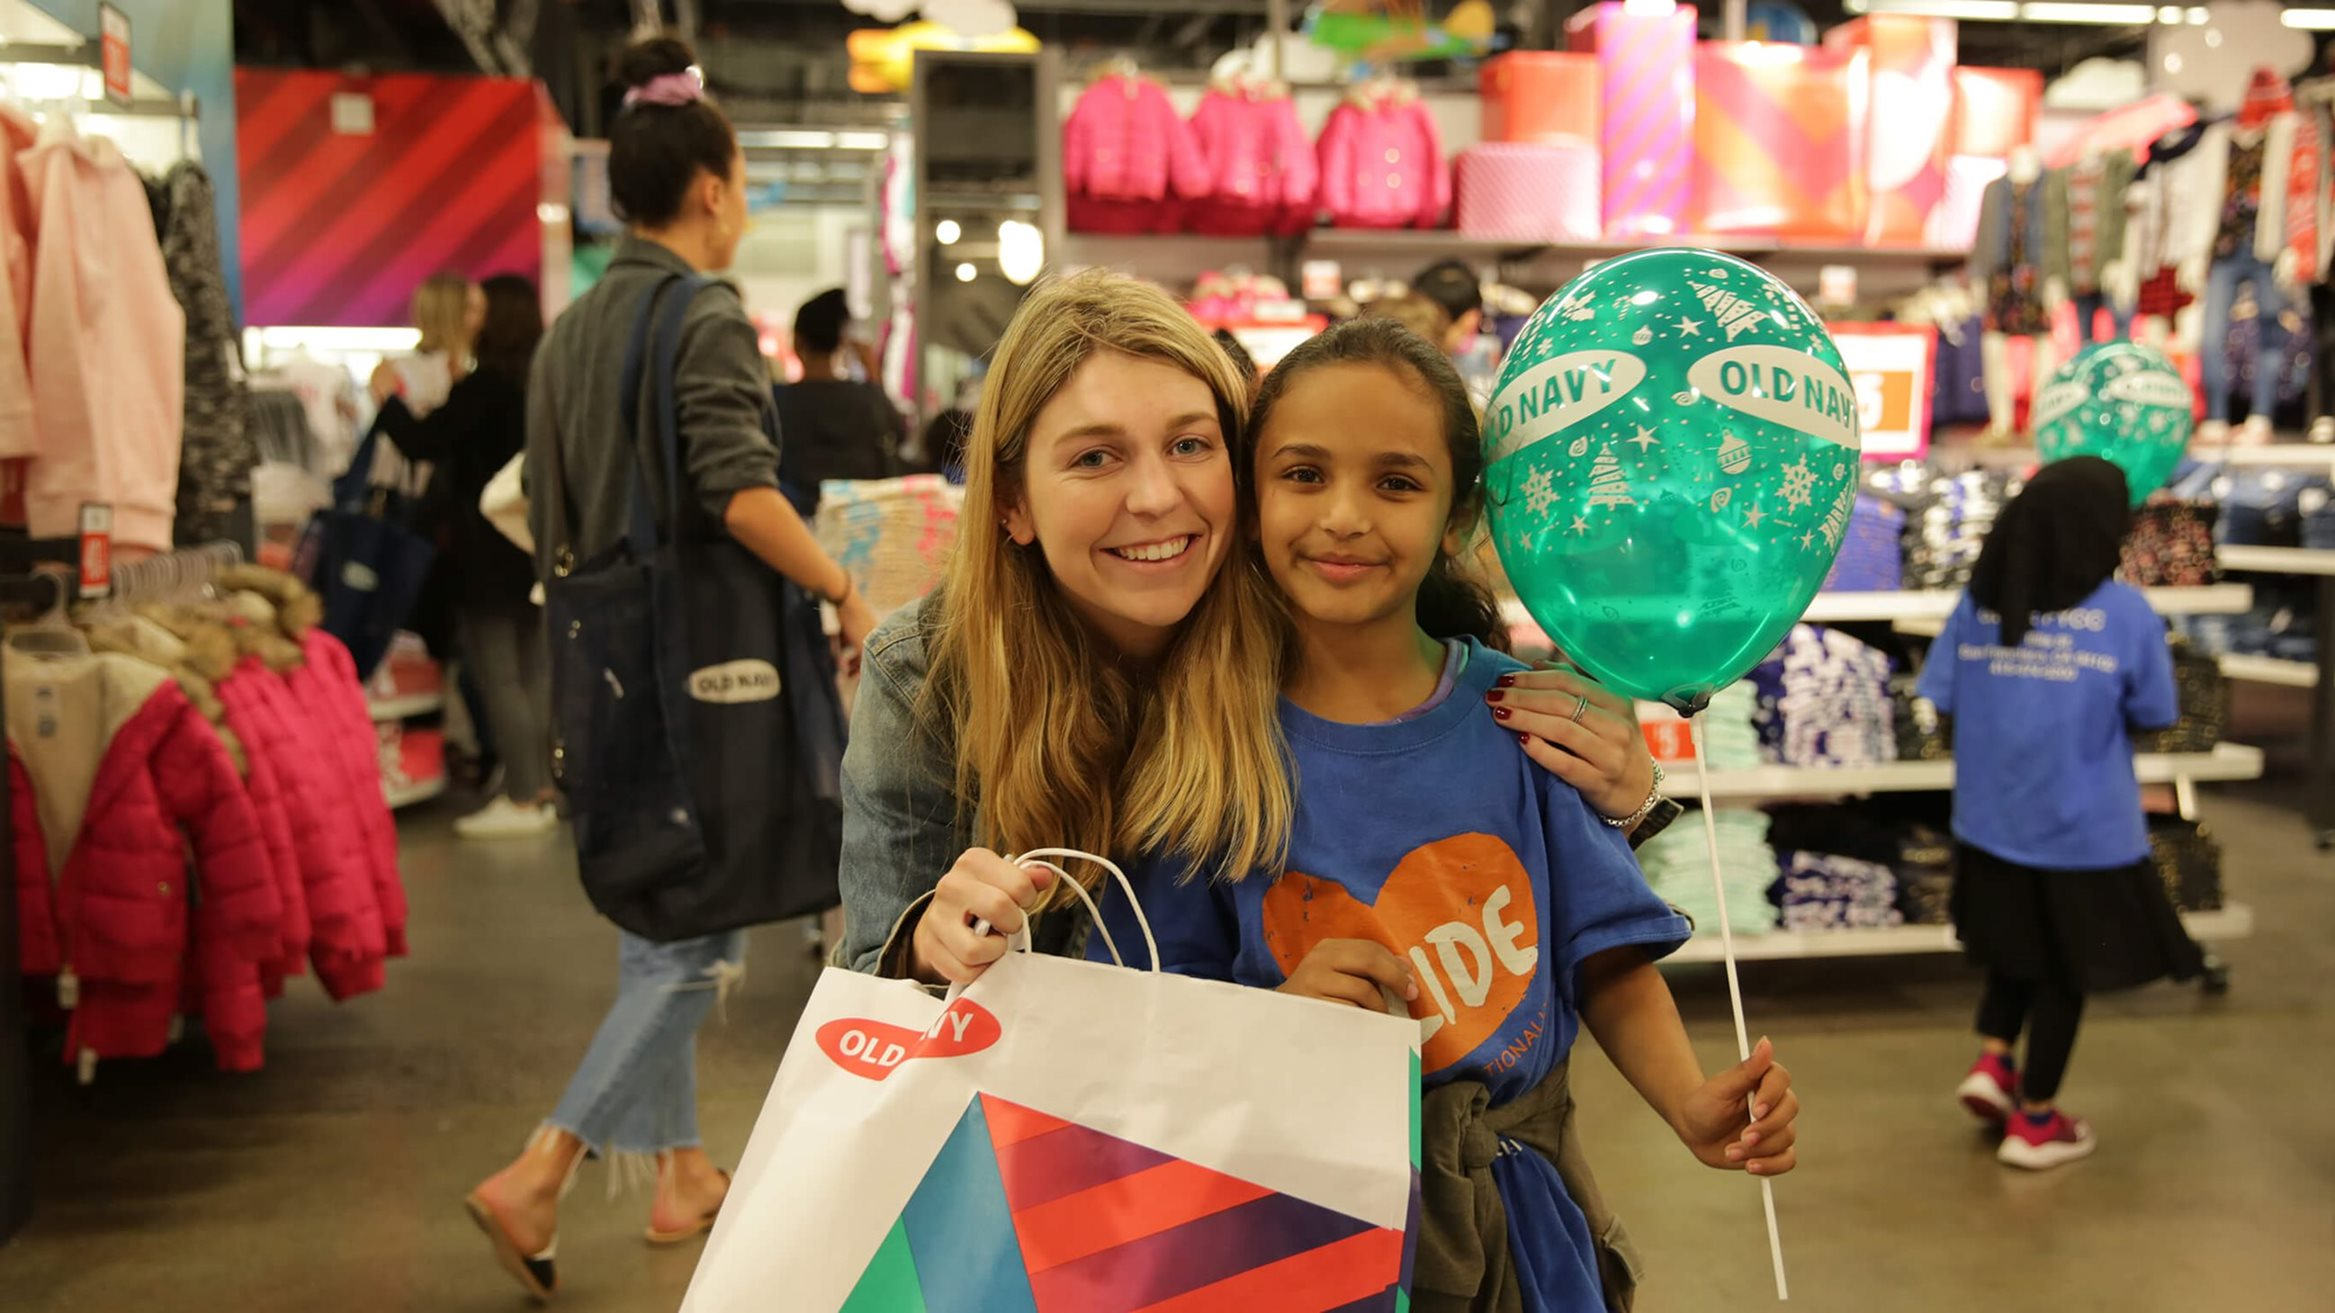 Old Navy Spreading the Old Navy Love for Deserving Kids